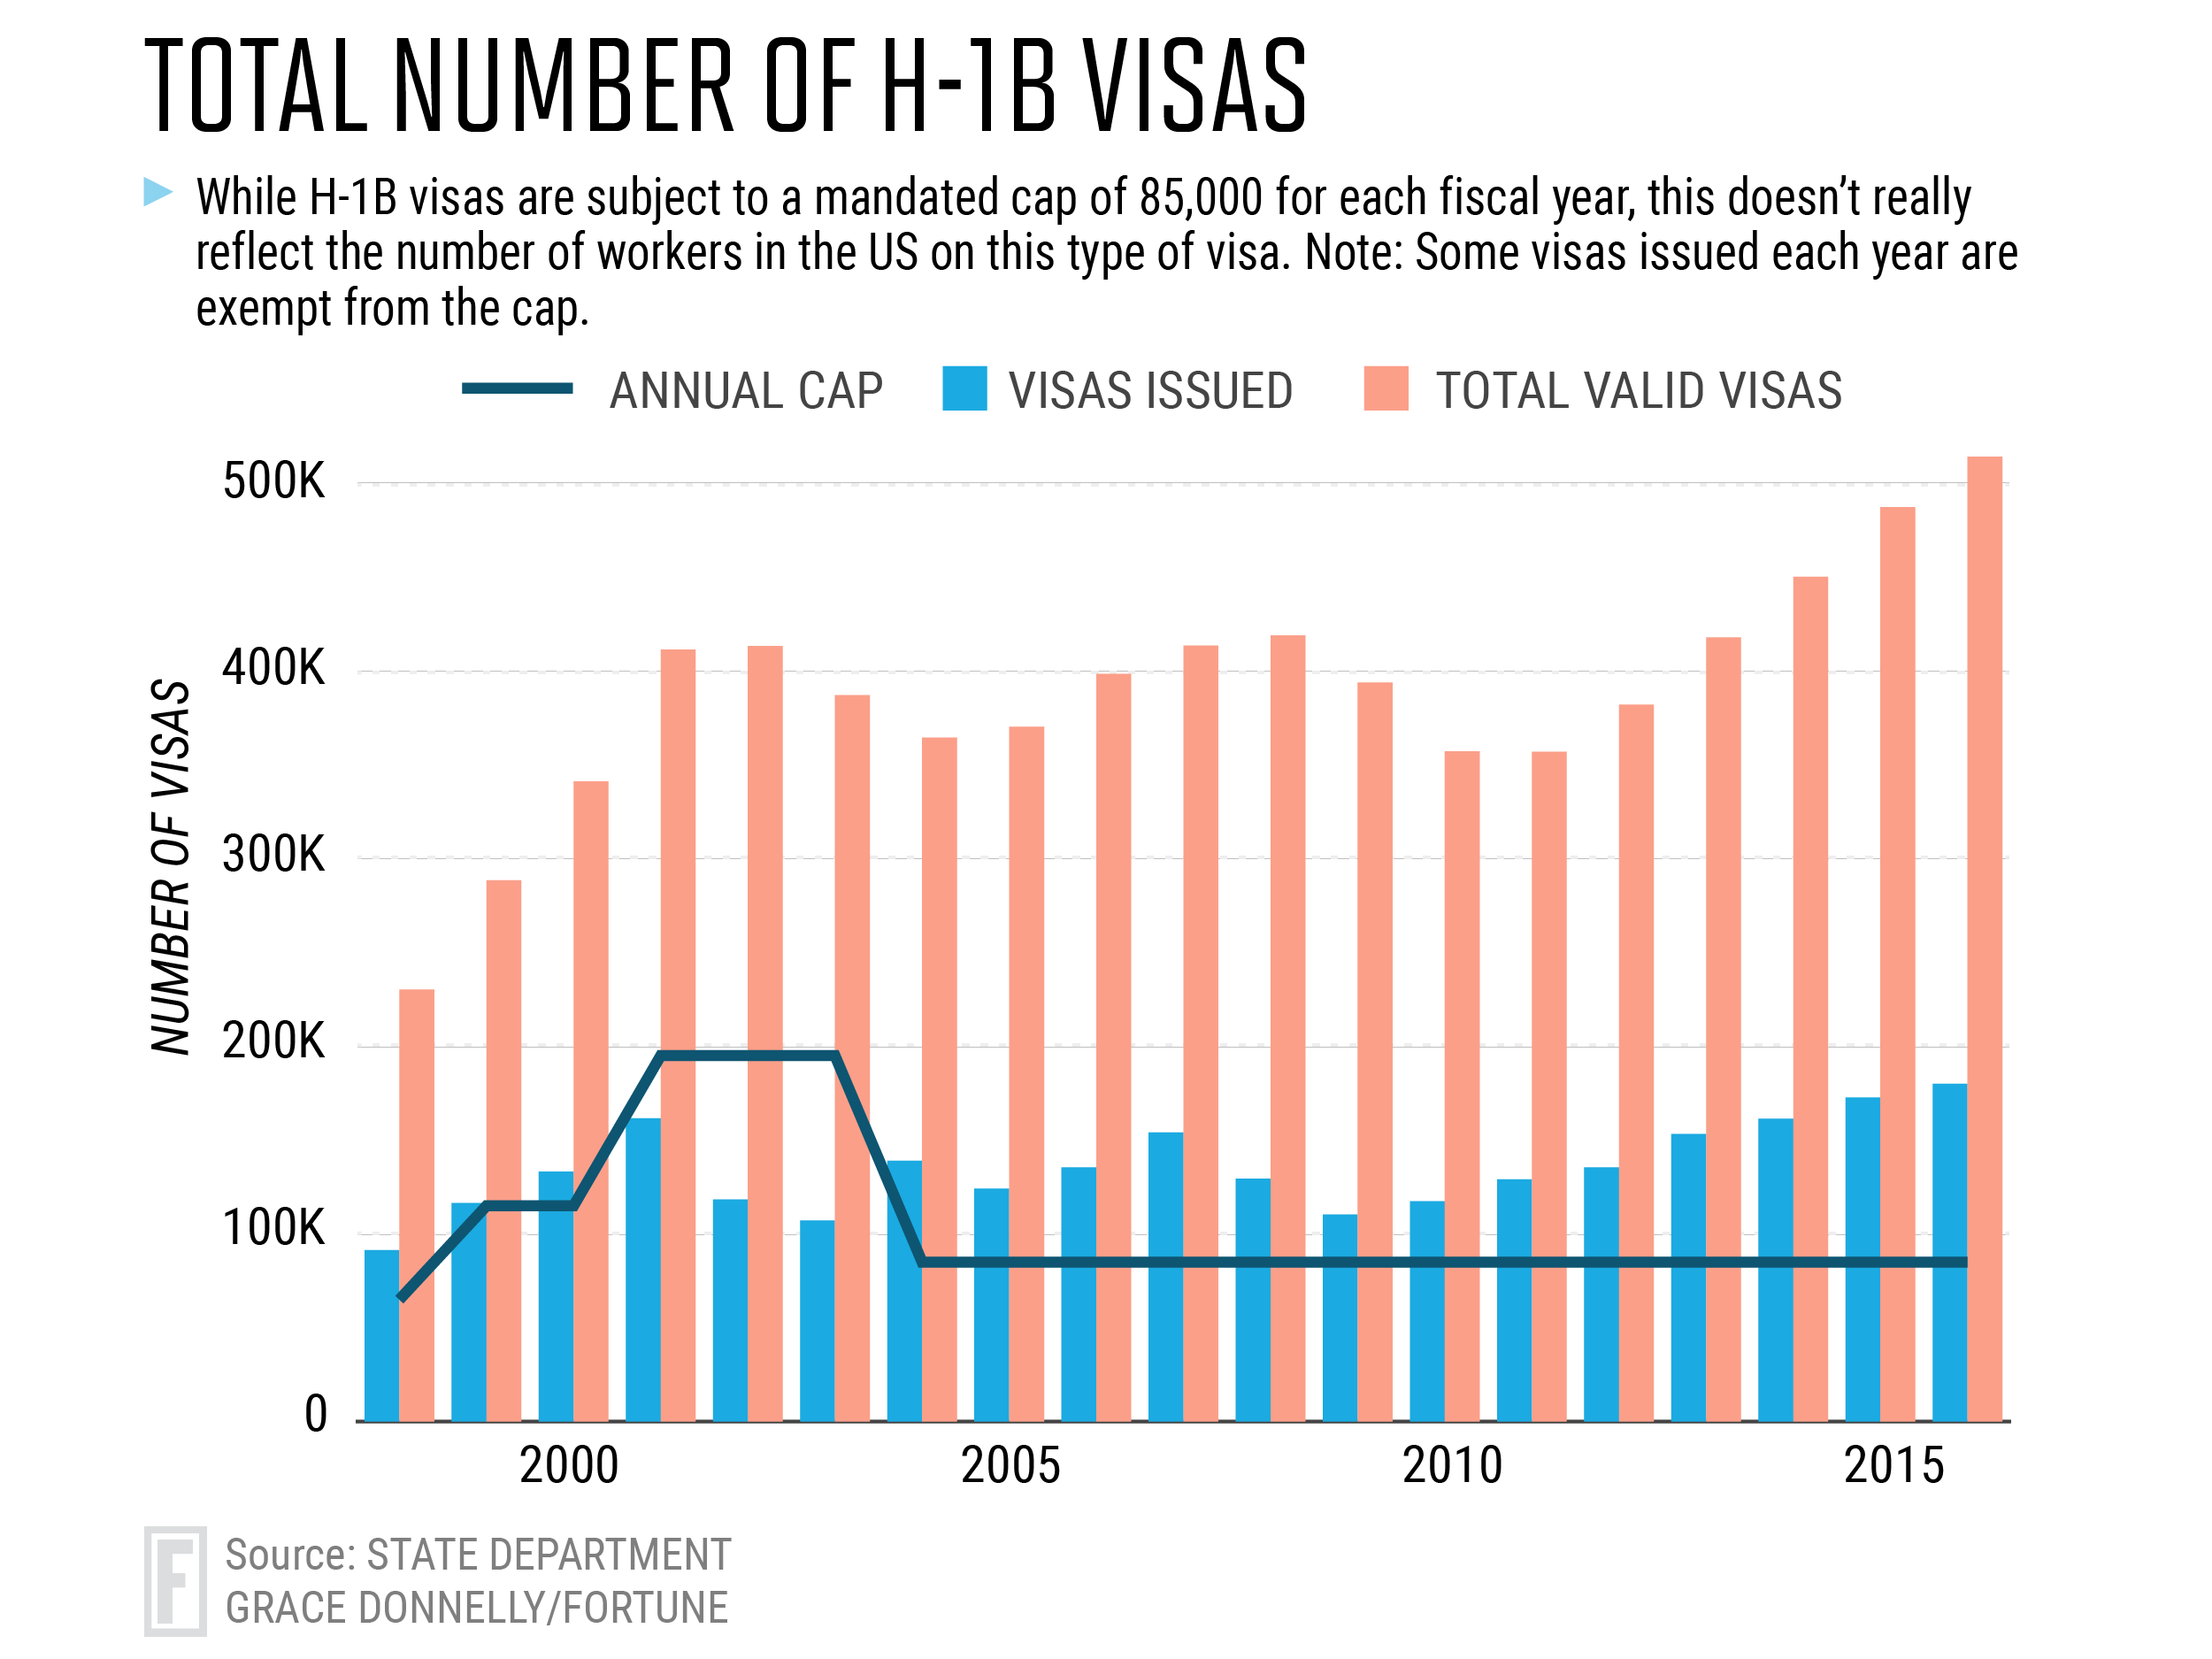 H1B Visa: US Jobs Interest May Be Waning Under Trump | Fortune